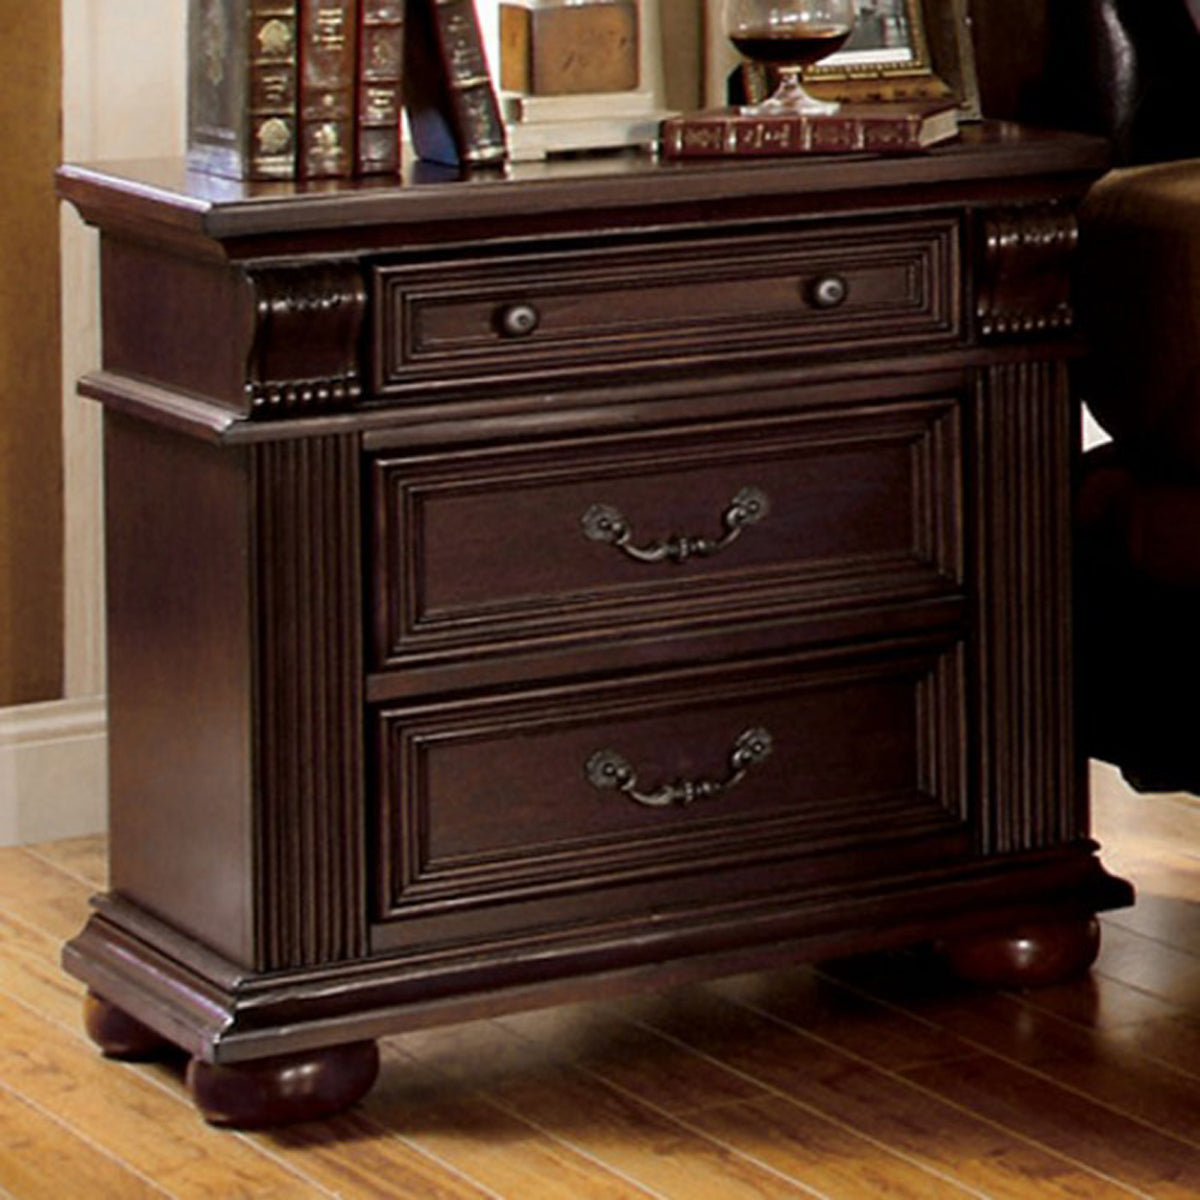 Furniture of America CM7711N Esperia Brown Cherry Finish Nightstand